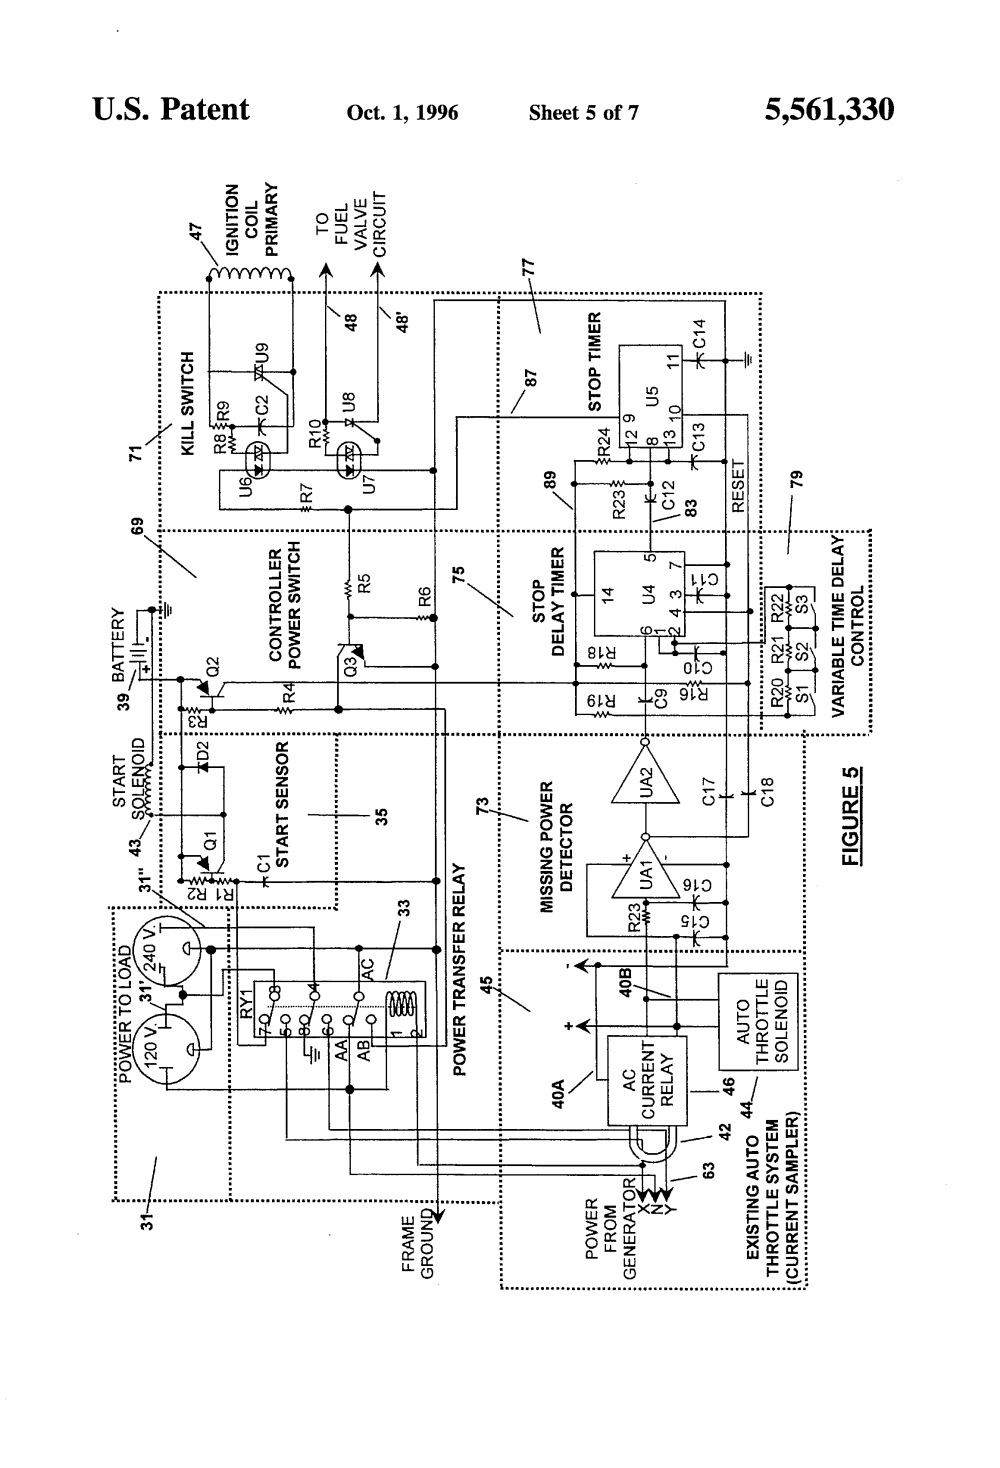 medium resolution of  us5561330 5 patent us5561330 automatic electric power generator control delco light plant wiring diagram at cita